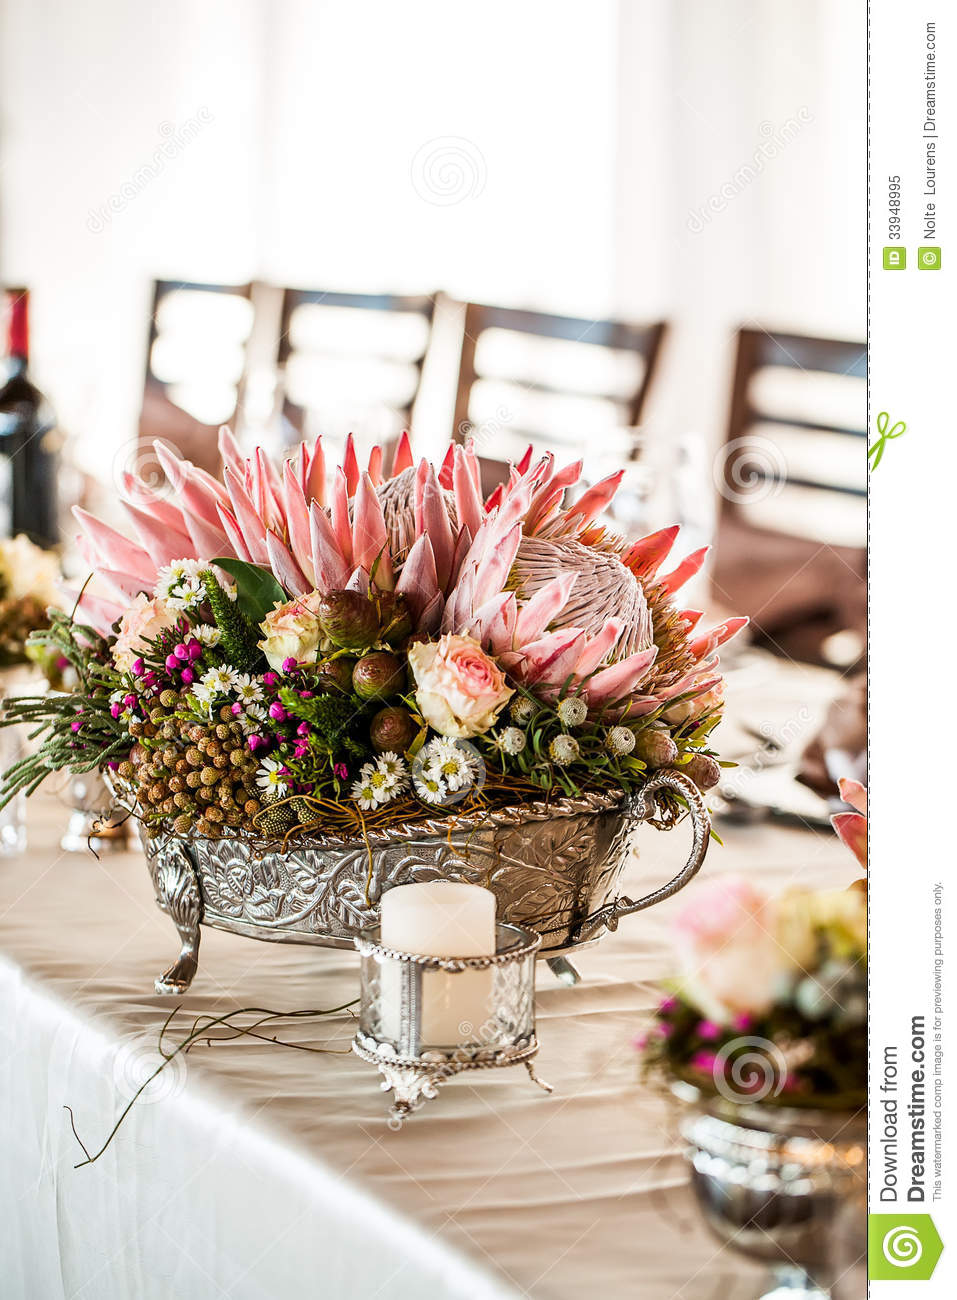 Detailed Silver Centerpiece Royalty Free Stock Photo